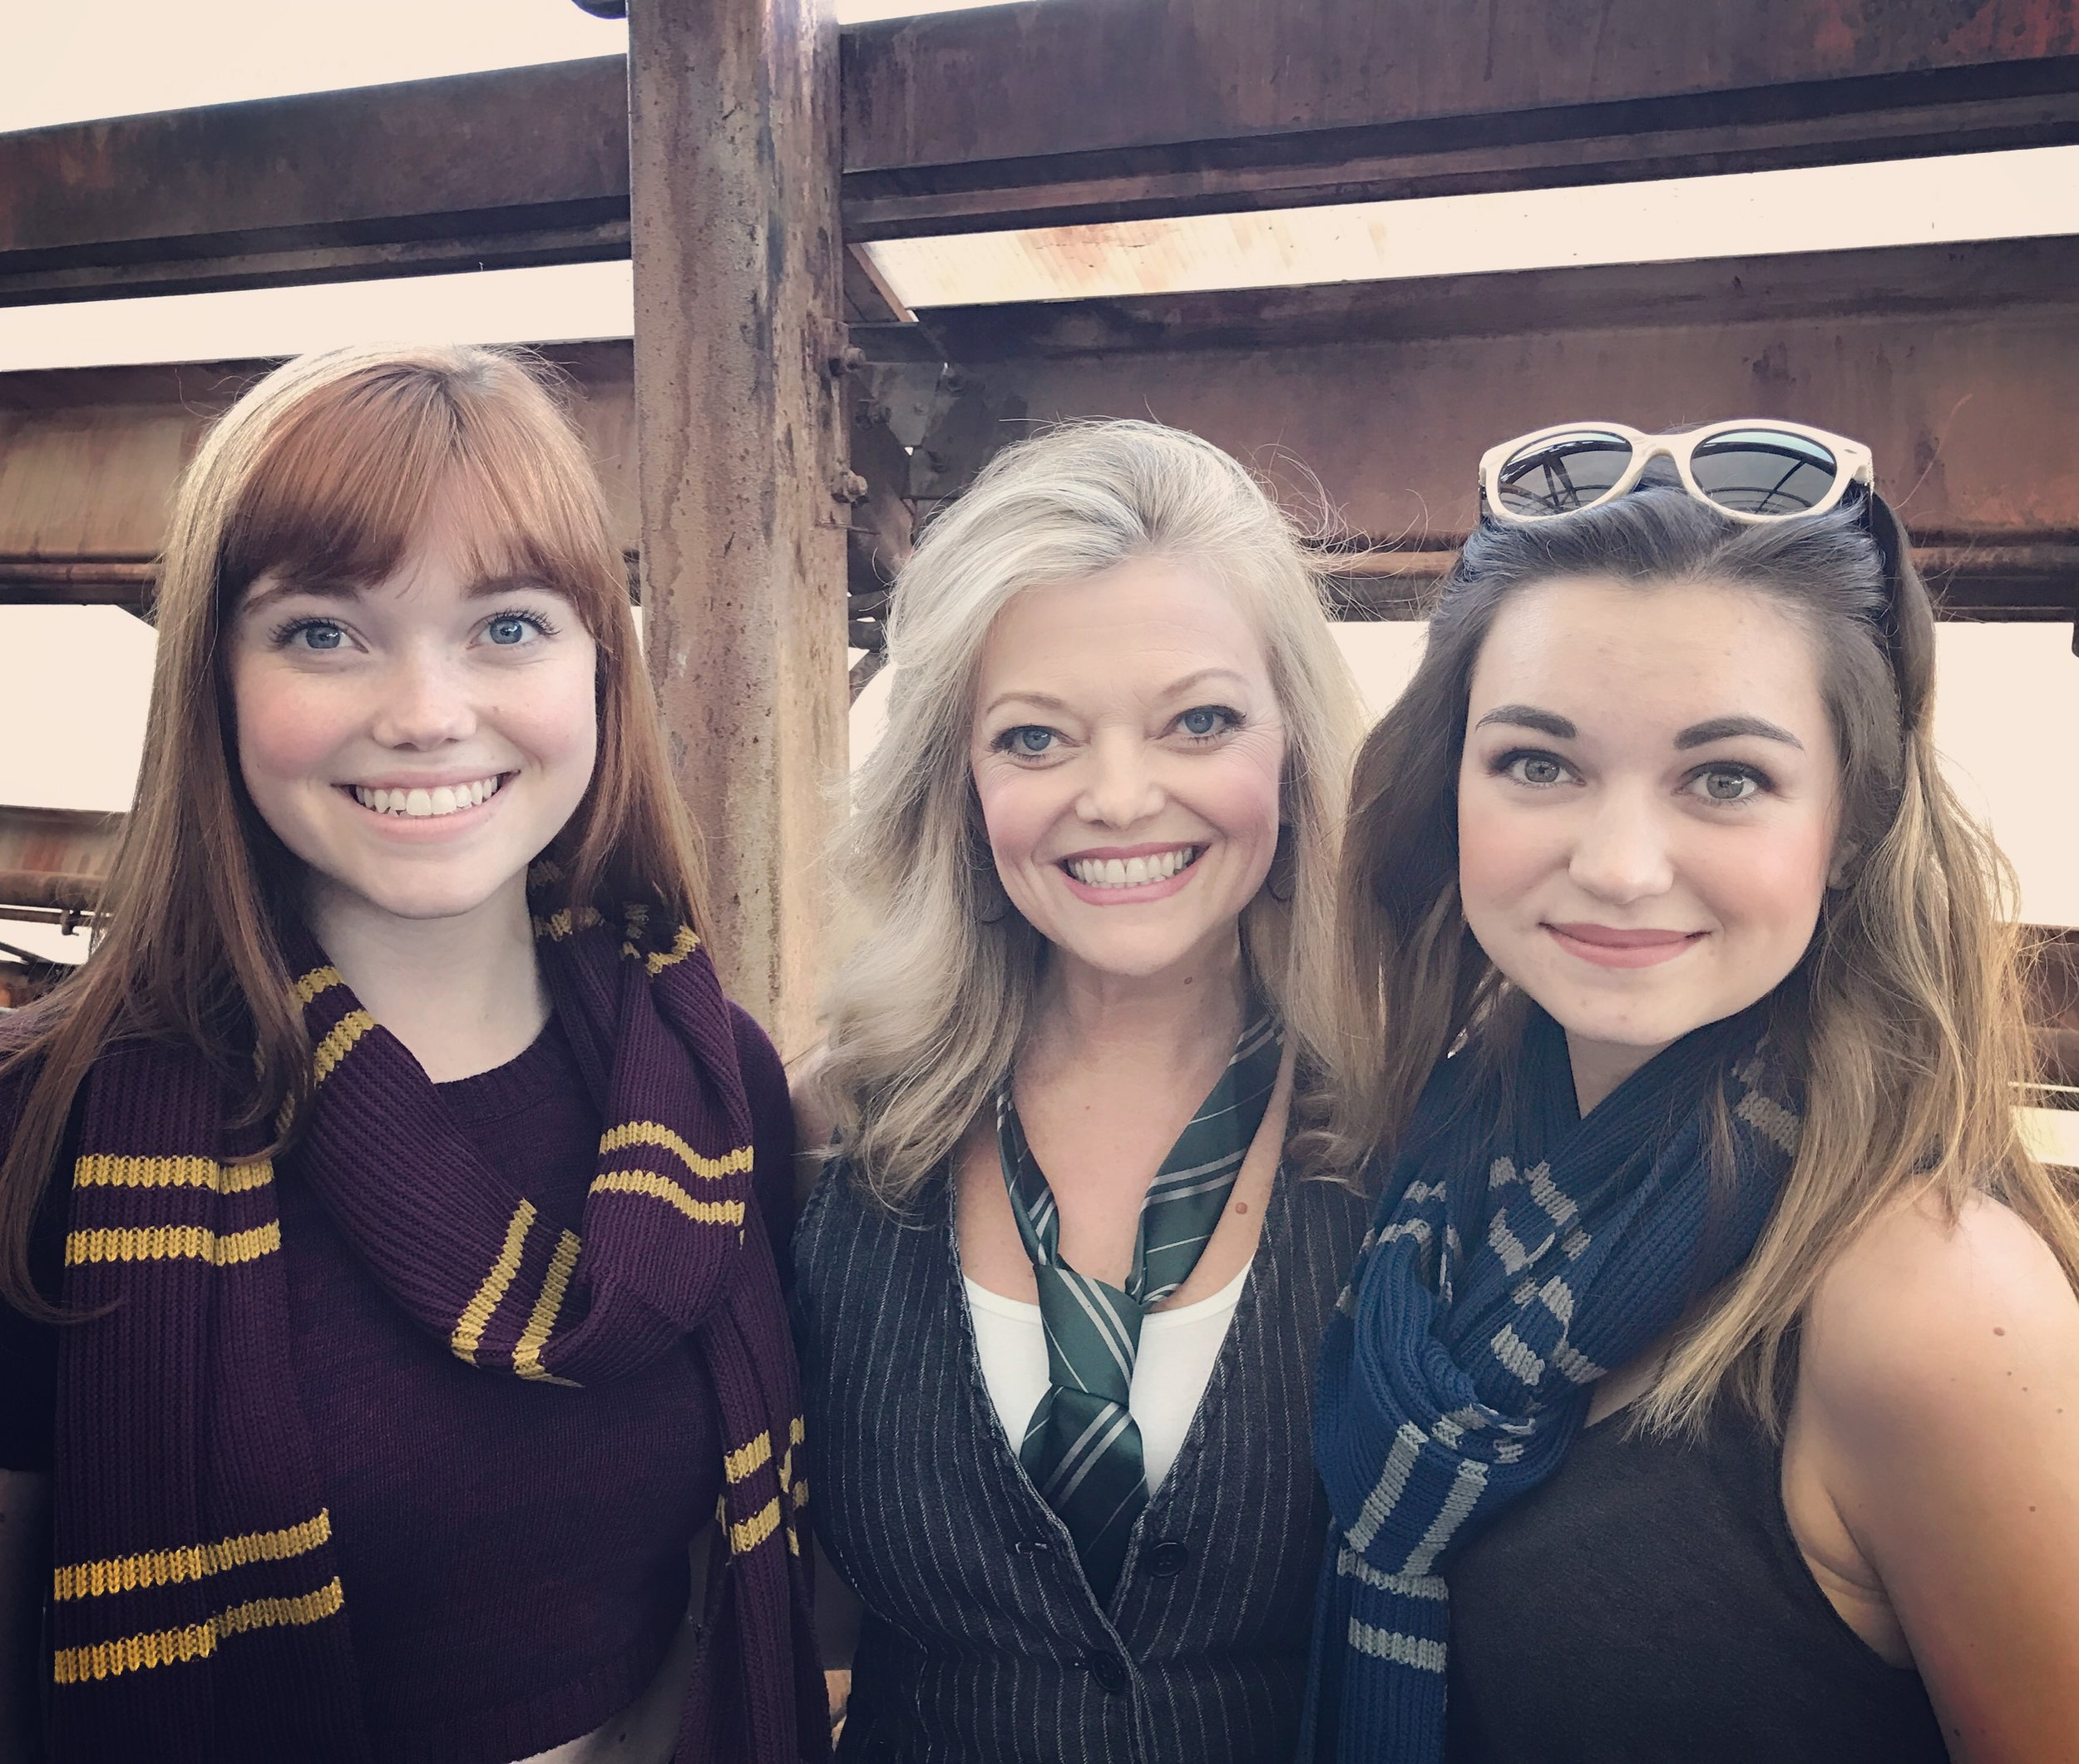 With my favorite Gryffindor and Ravenclaw...